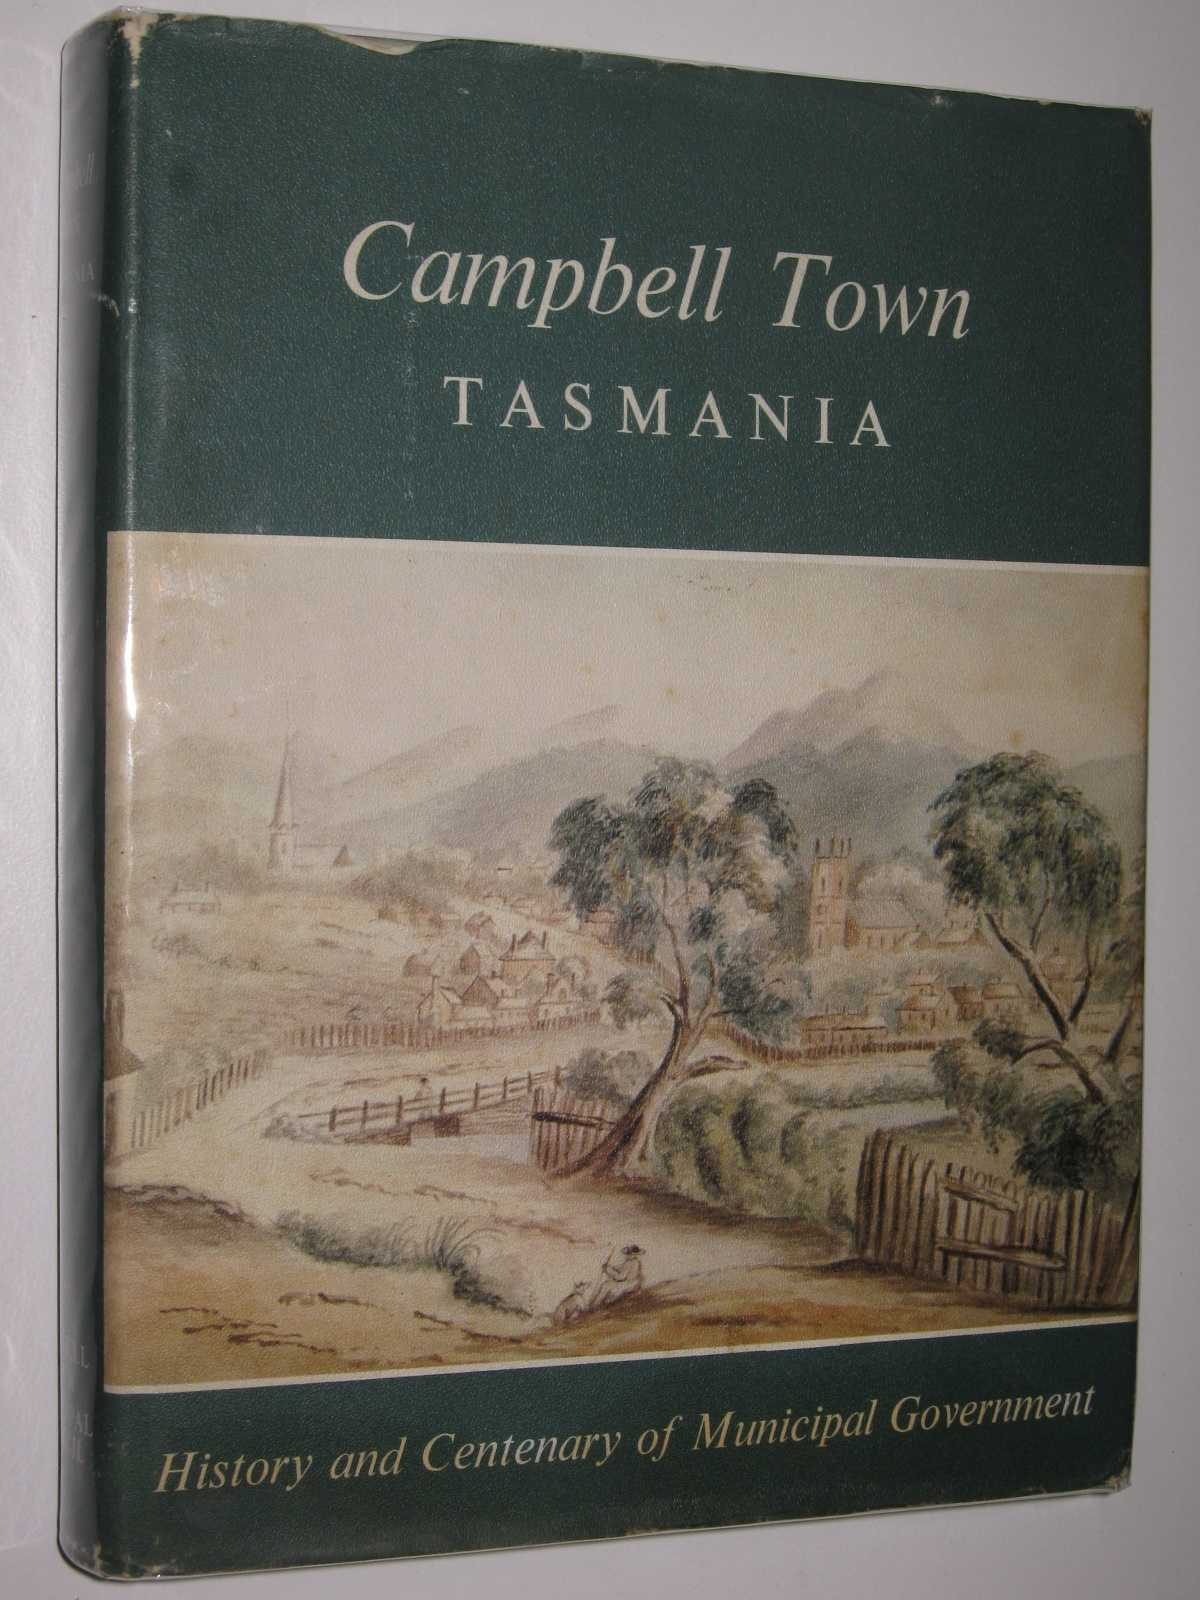 Campbell Town, Tasmania : History and Centenary of Municipal Government, Historial Committee of the National Trust of Australia (Tasmania)